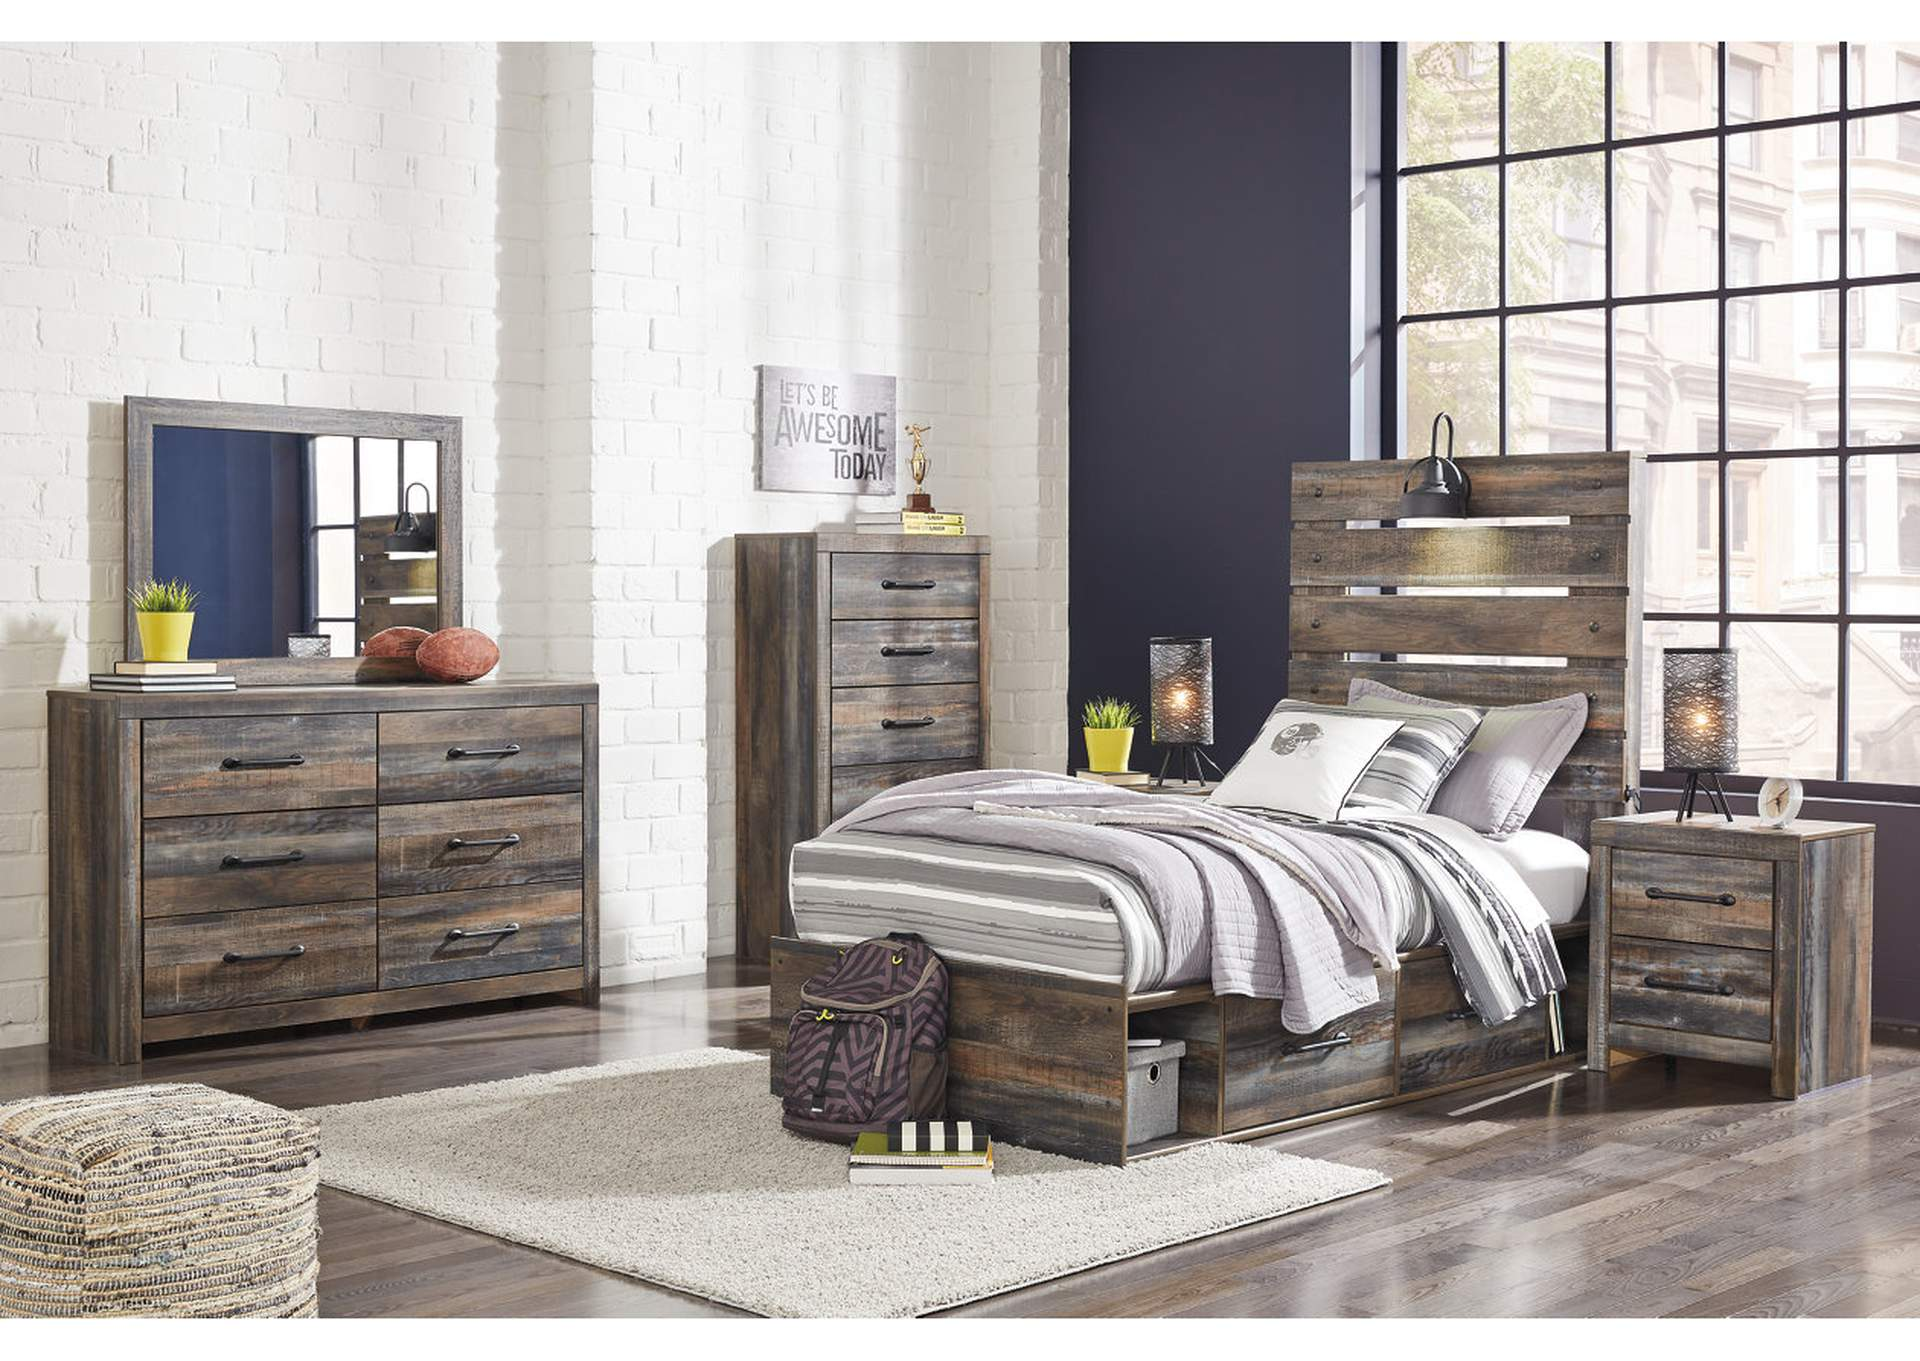 Drystan Twin Panel Bed with 2 Storage Drawers w/Dresser and Mirror,Signature Design By Ashley